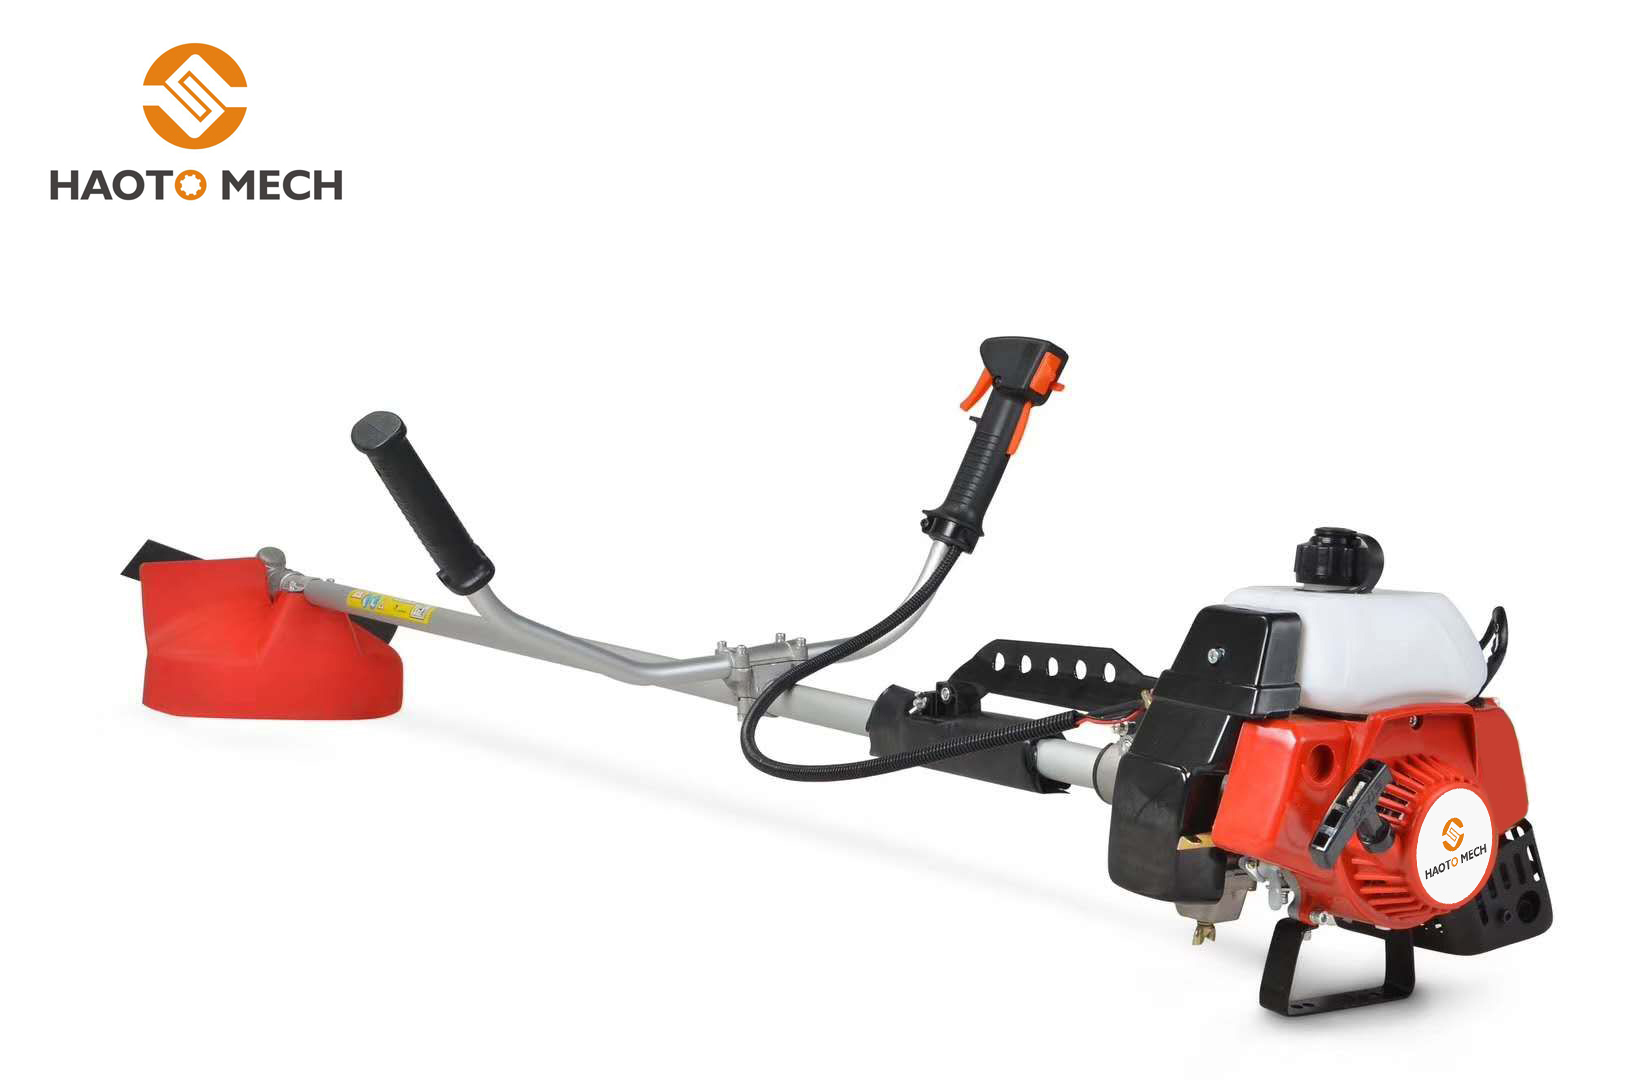 411 brush cutter 2 stroke grass trimmer